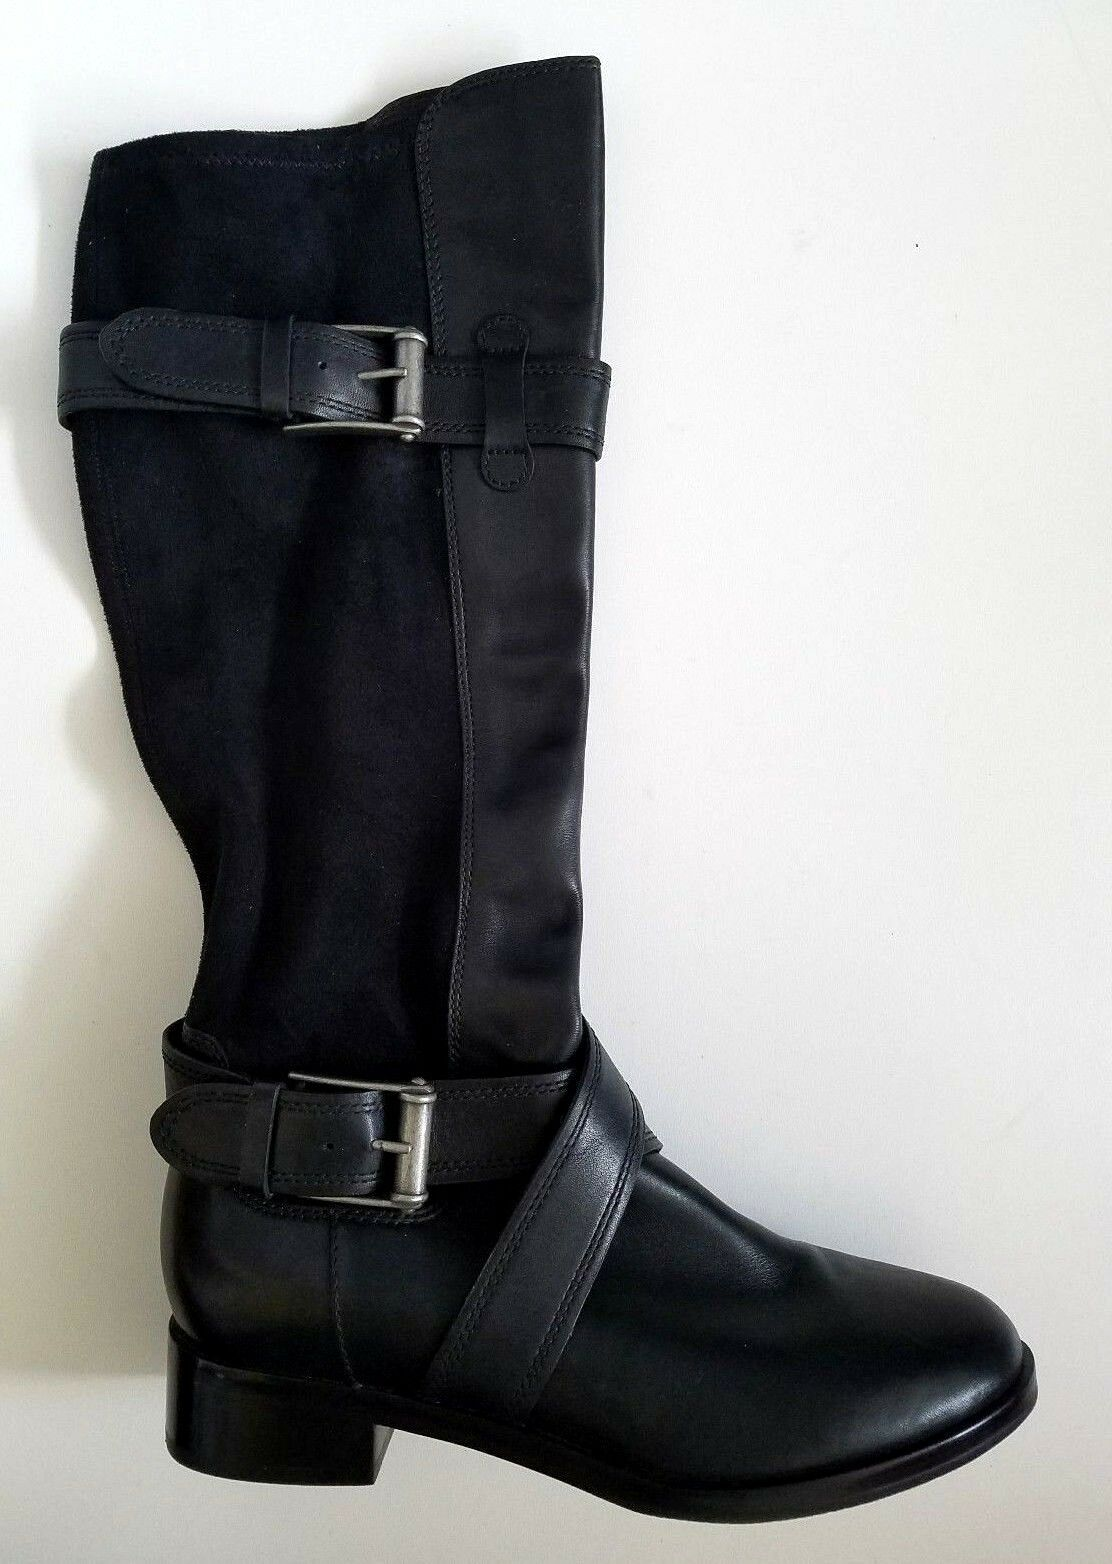 Cole Haan NikeAir Black Black Black Tall Boots Leather Fabric Buckle Size 7B NEW 020342